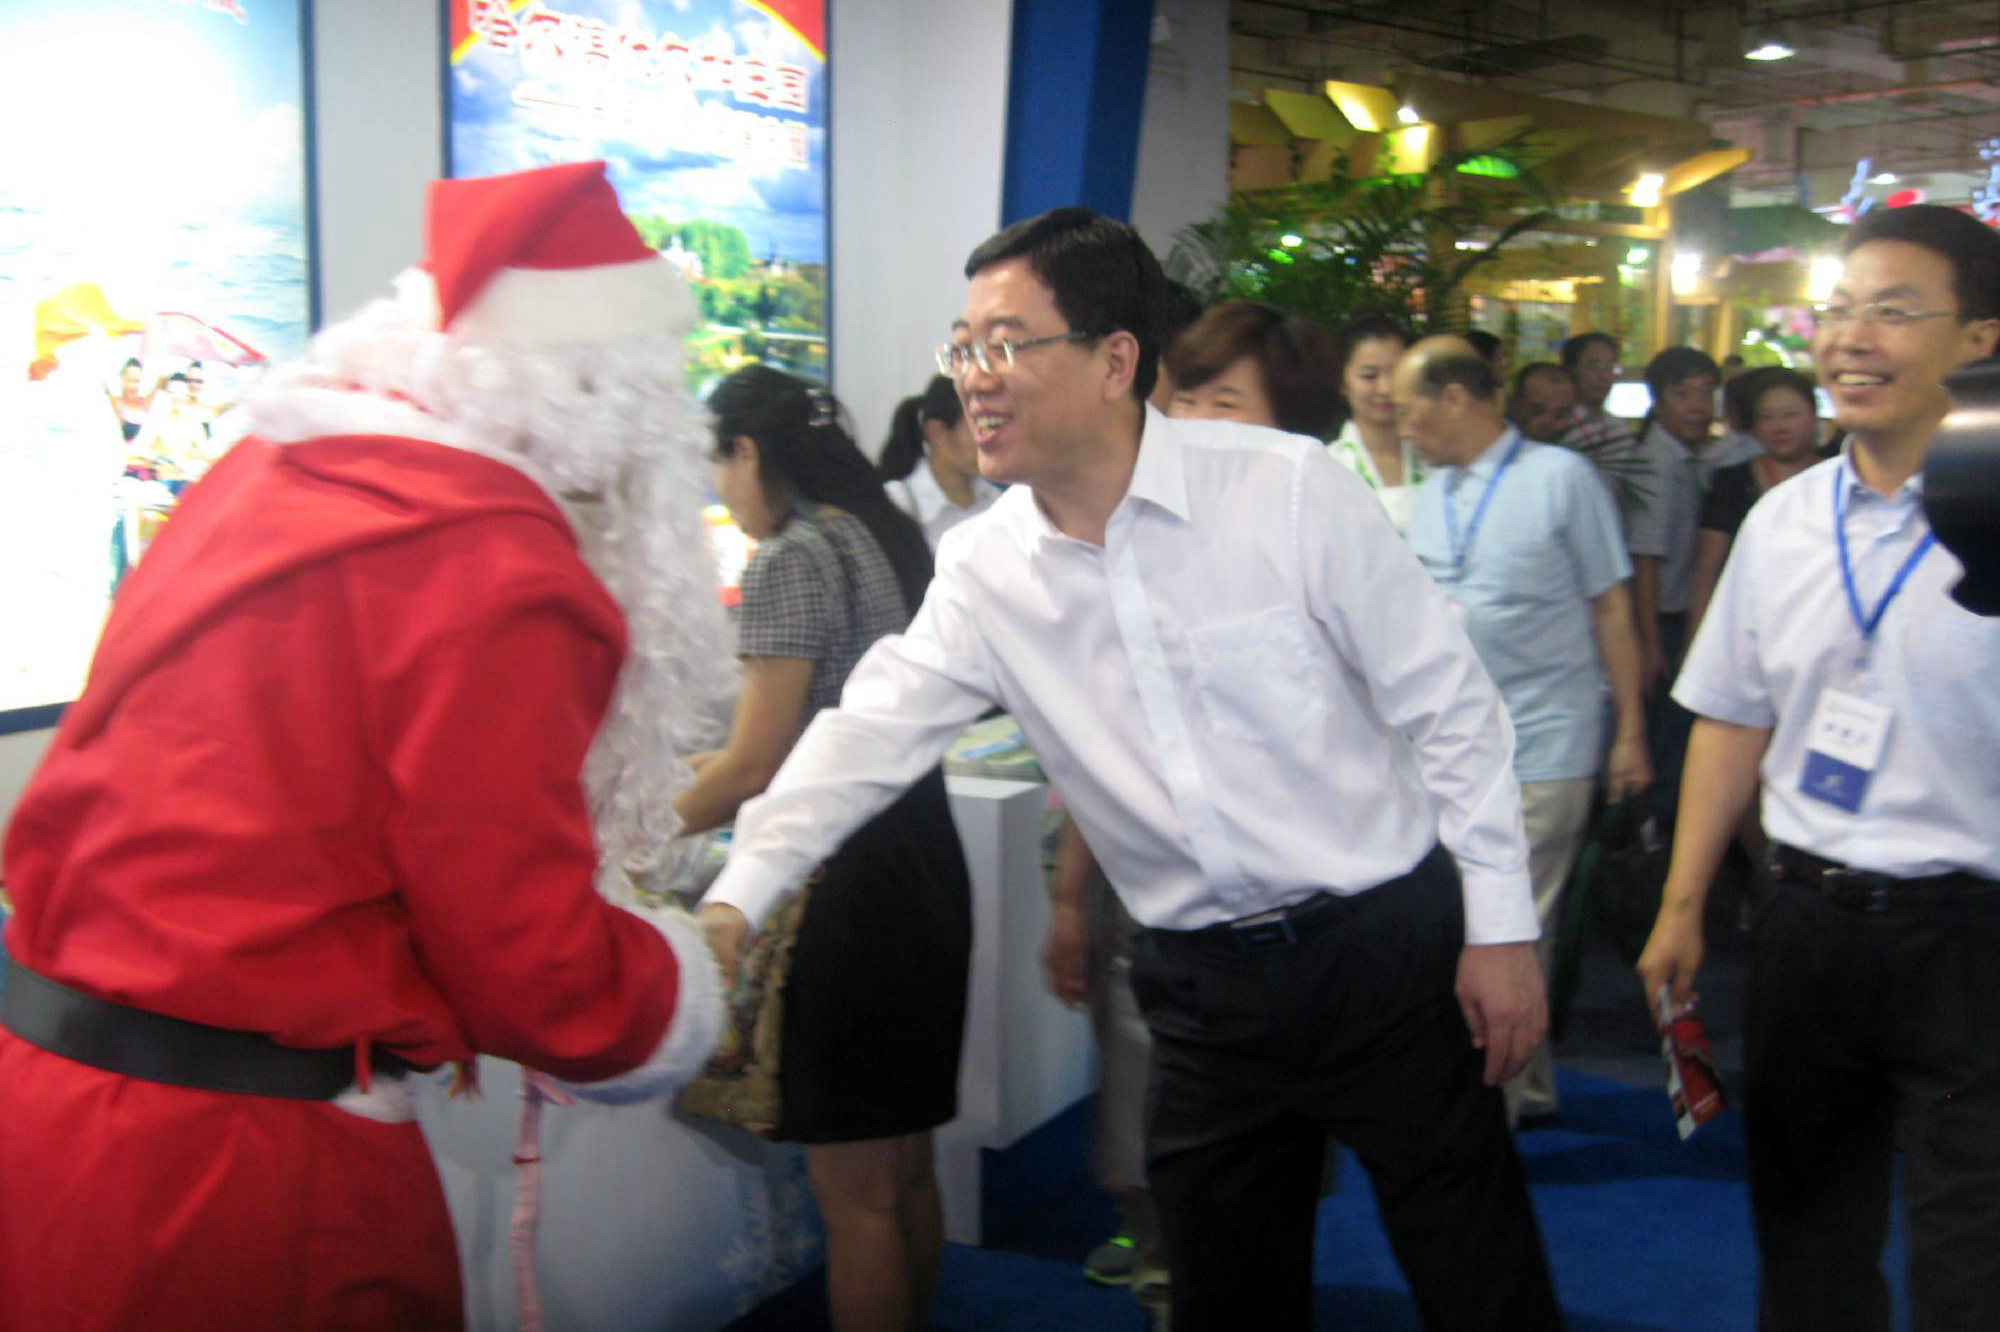 Finnish Santa Claus Matti visited Shanghai in 2015